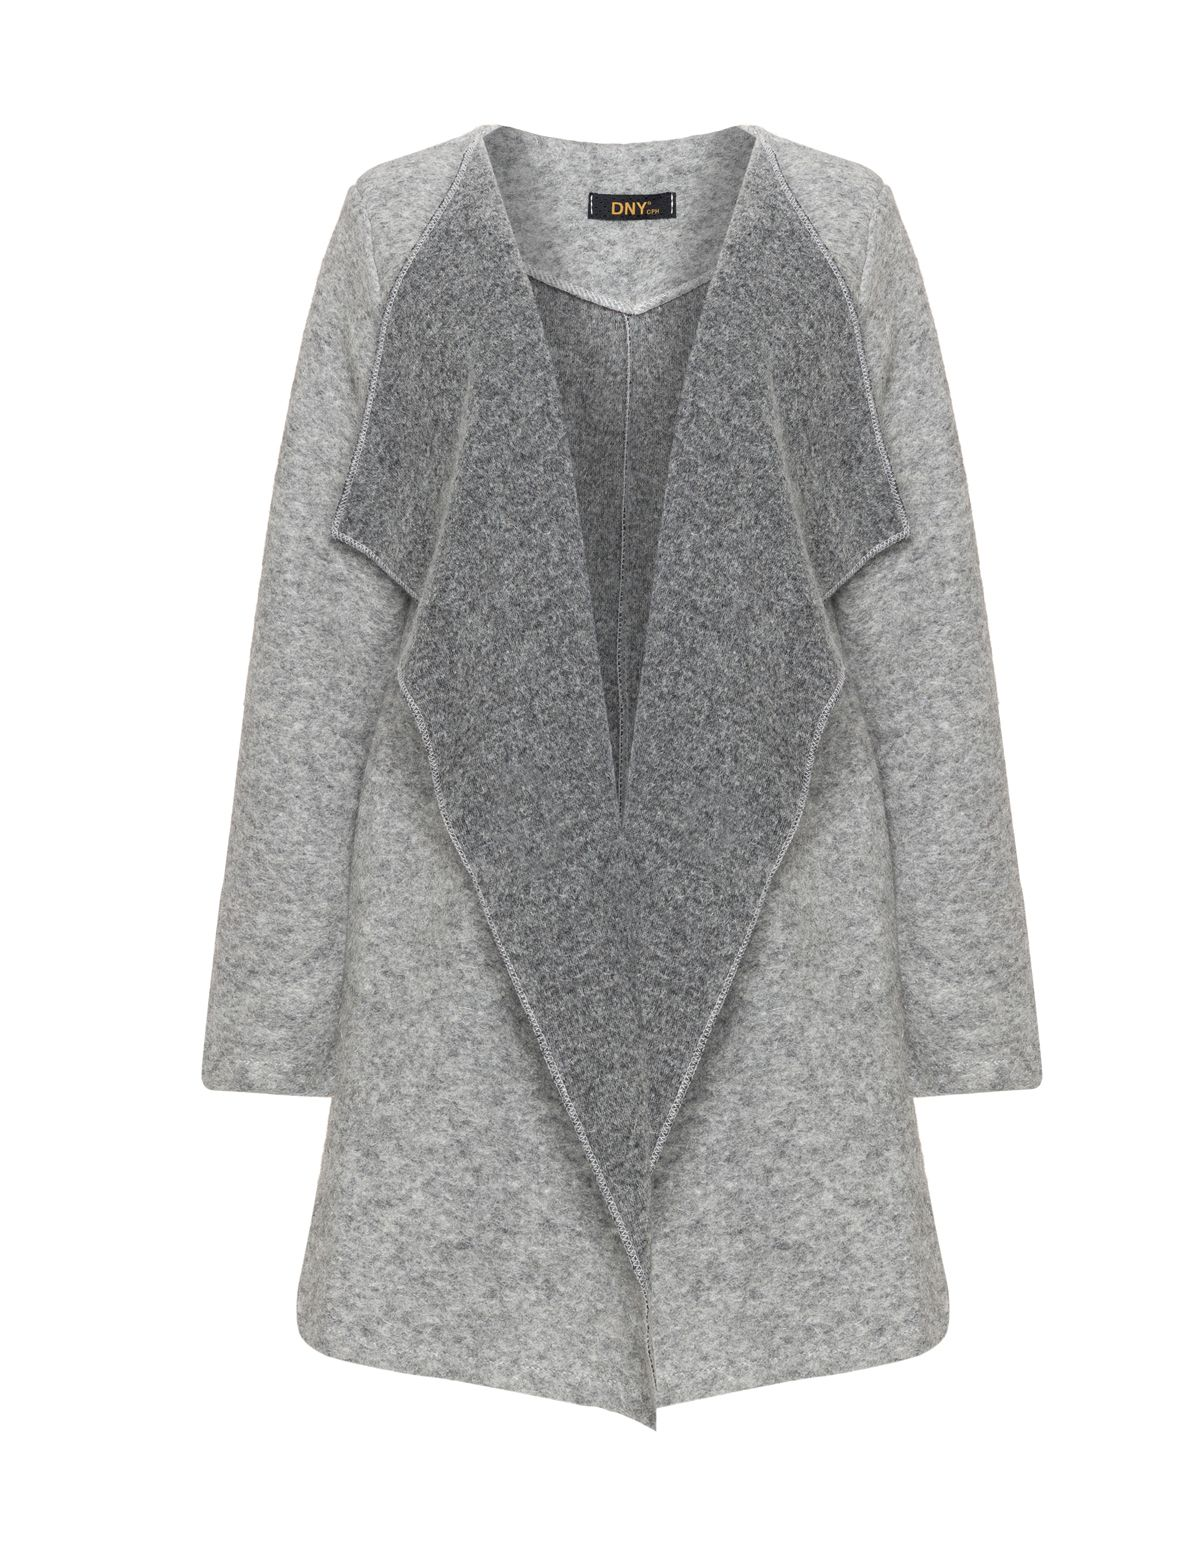 DNY Wool waterfall jacket in Light-Grey | Женская мода | Pinterest ...